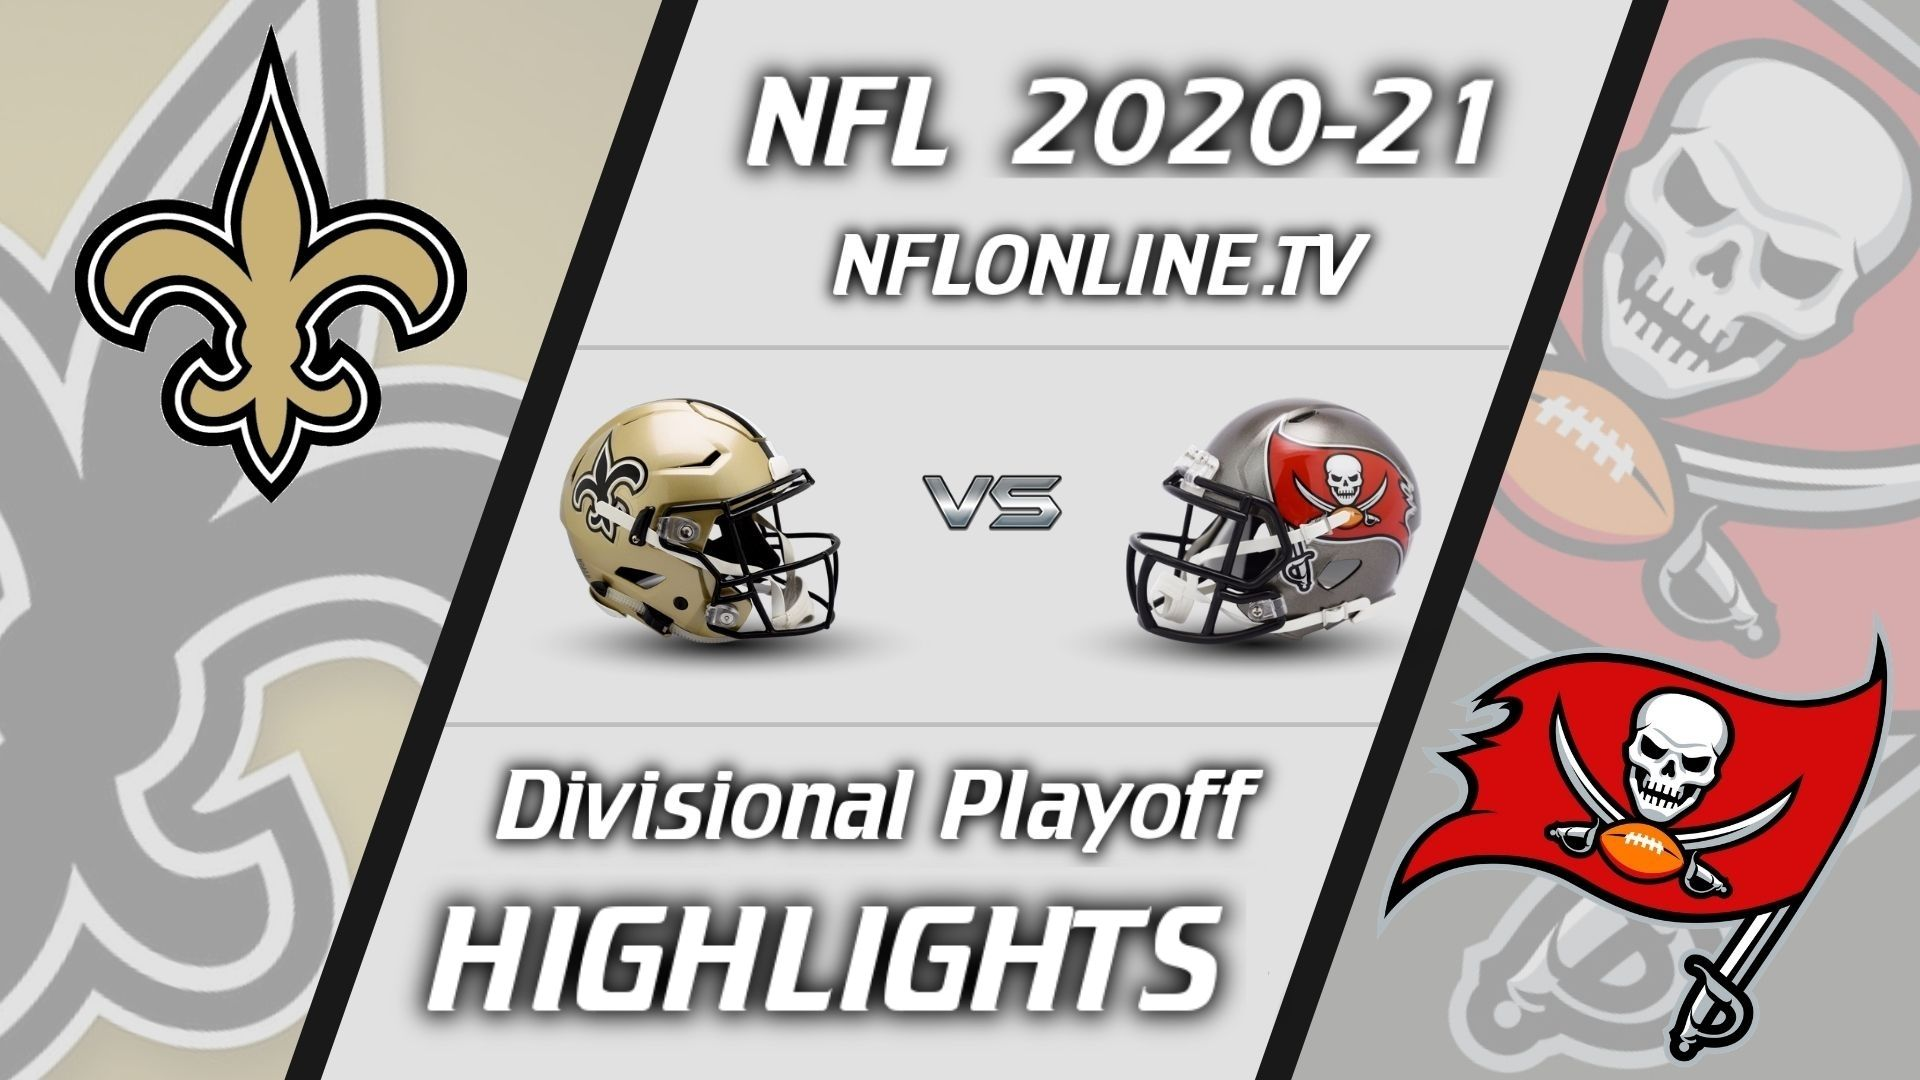 Saints Vs Buccaneers Highlights 2021 NFL Divisional Playoff